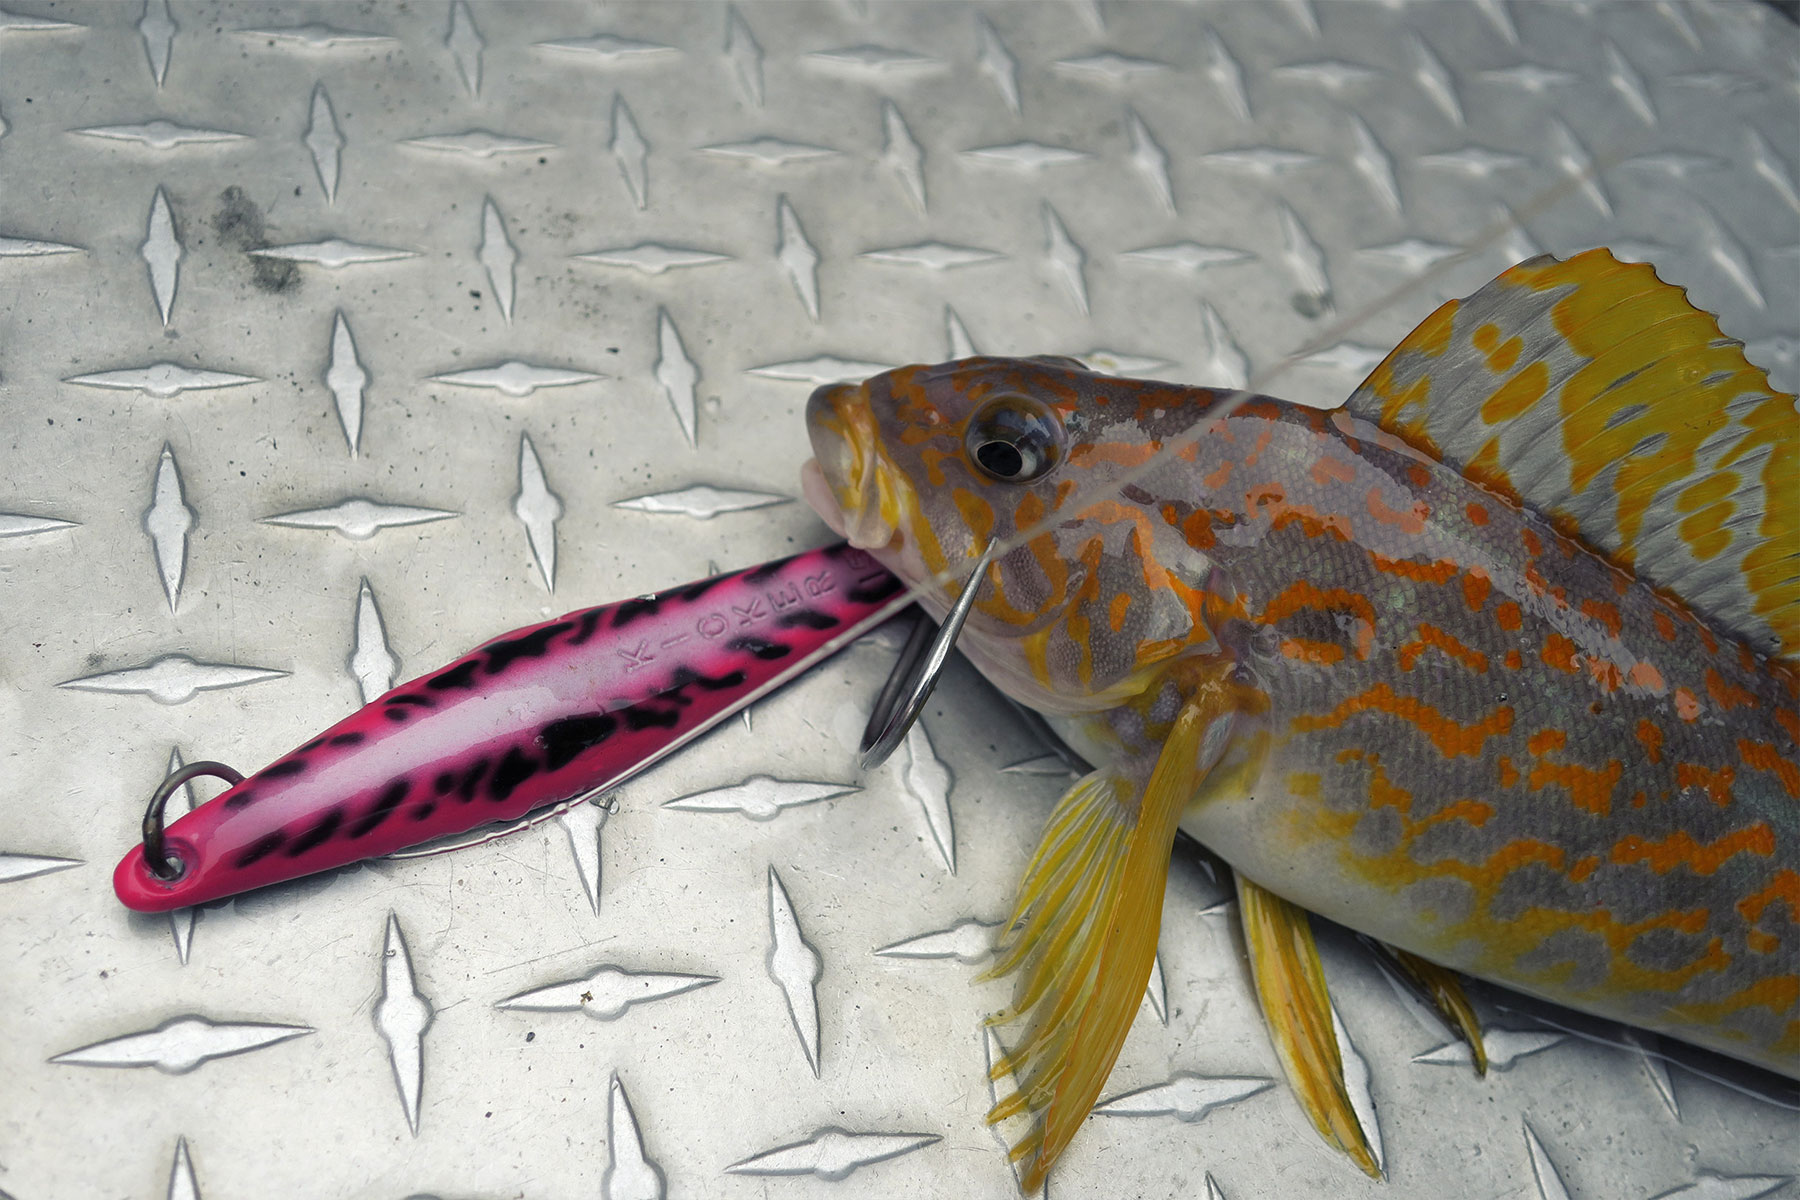 Exotic wrasse on the exotic jig.